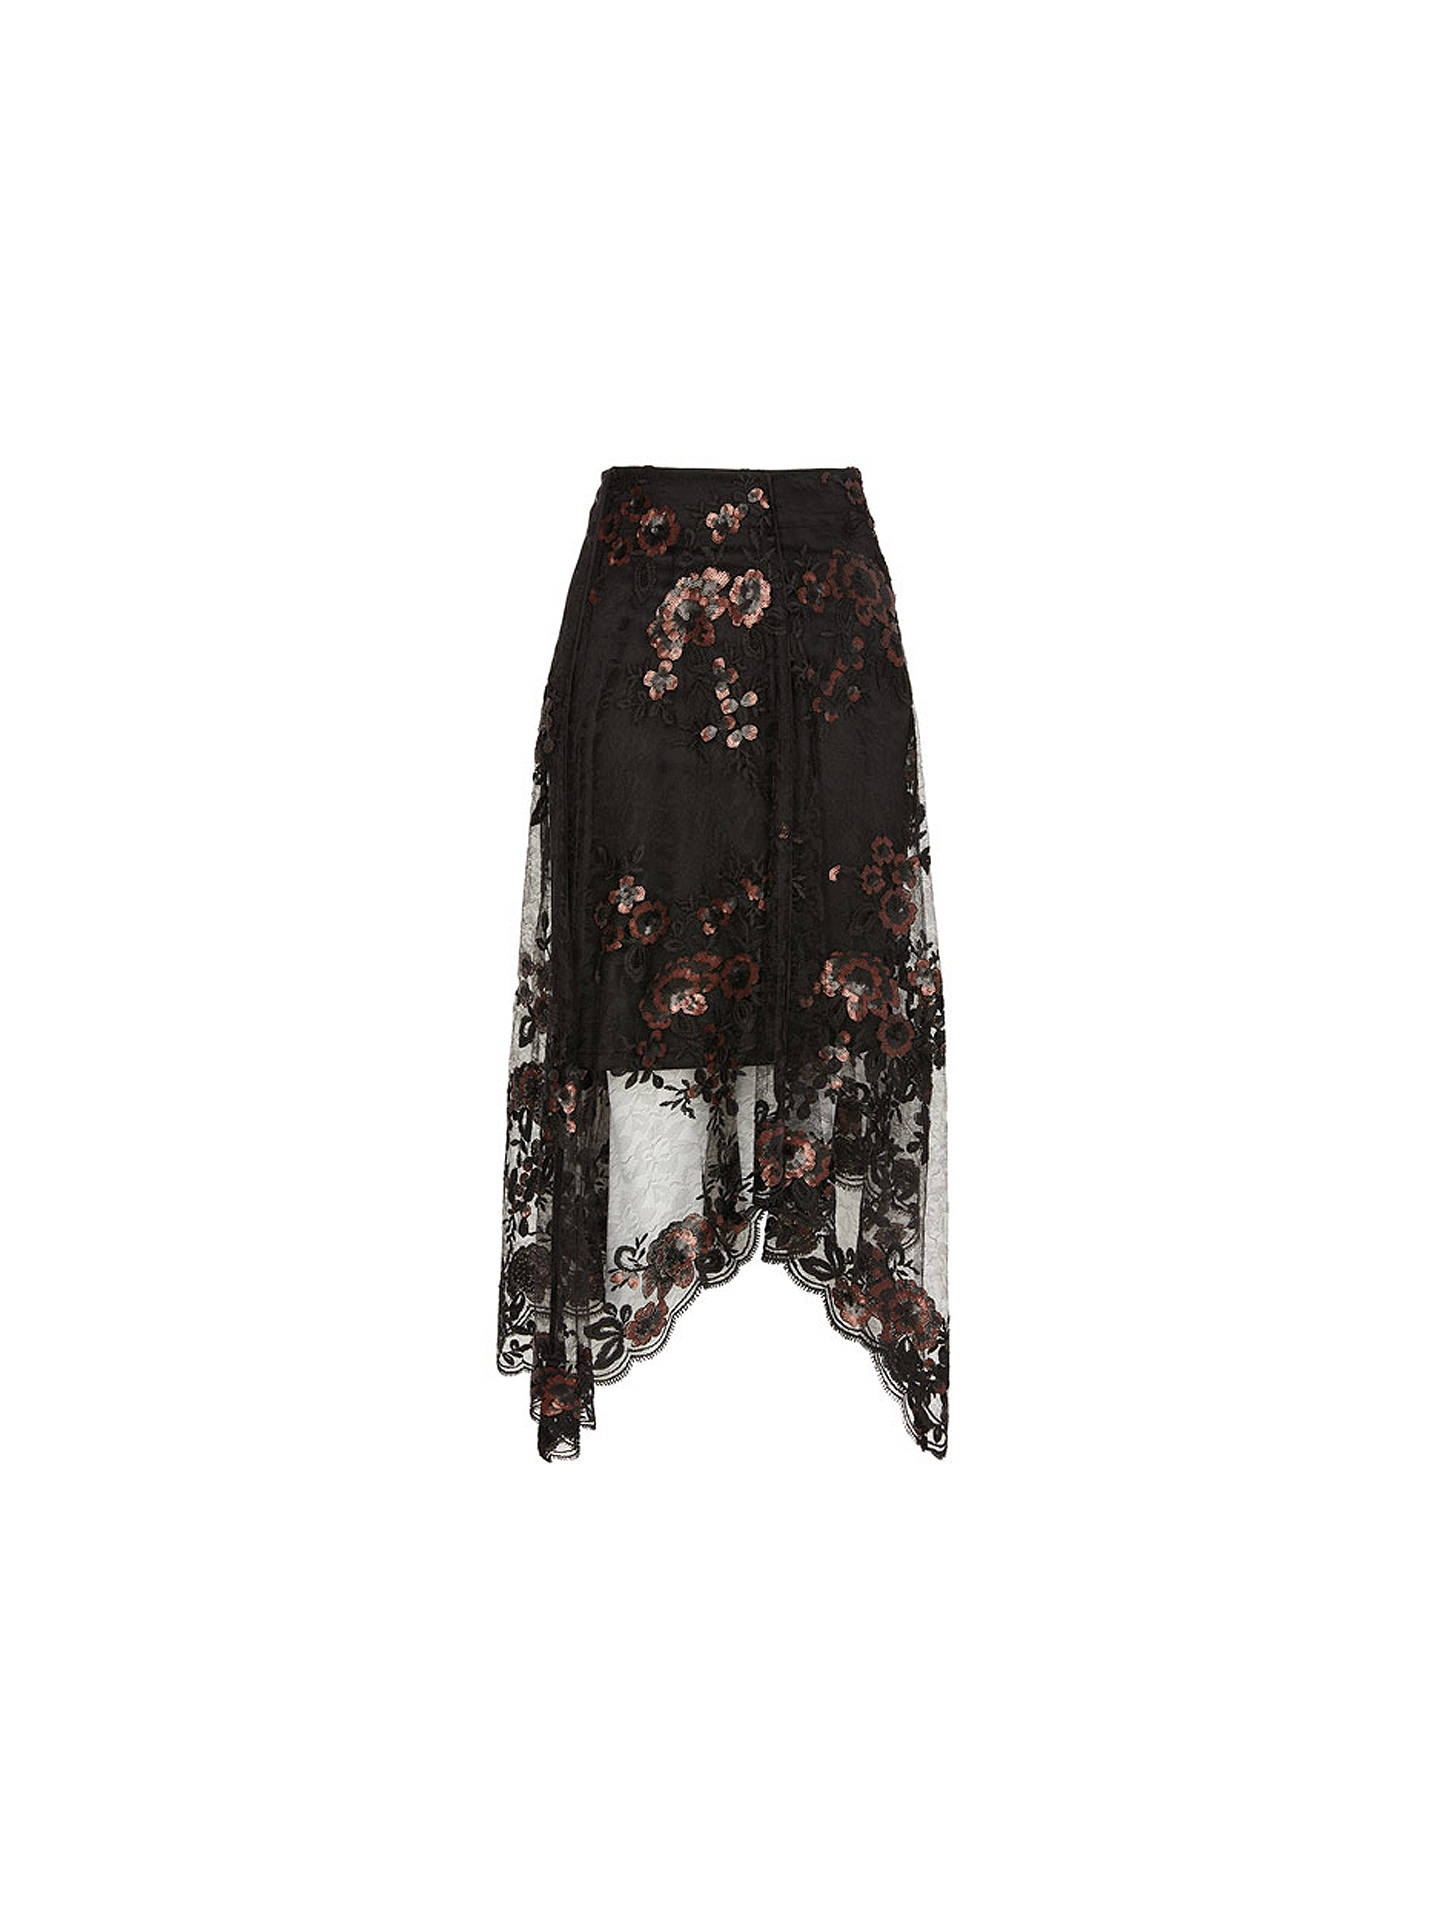 BuyCoast Ruth Lace Embroidered Skirt, Black, 6 Online at johnlewis.com